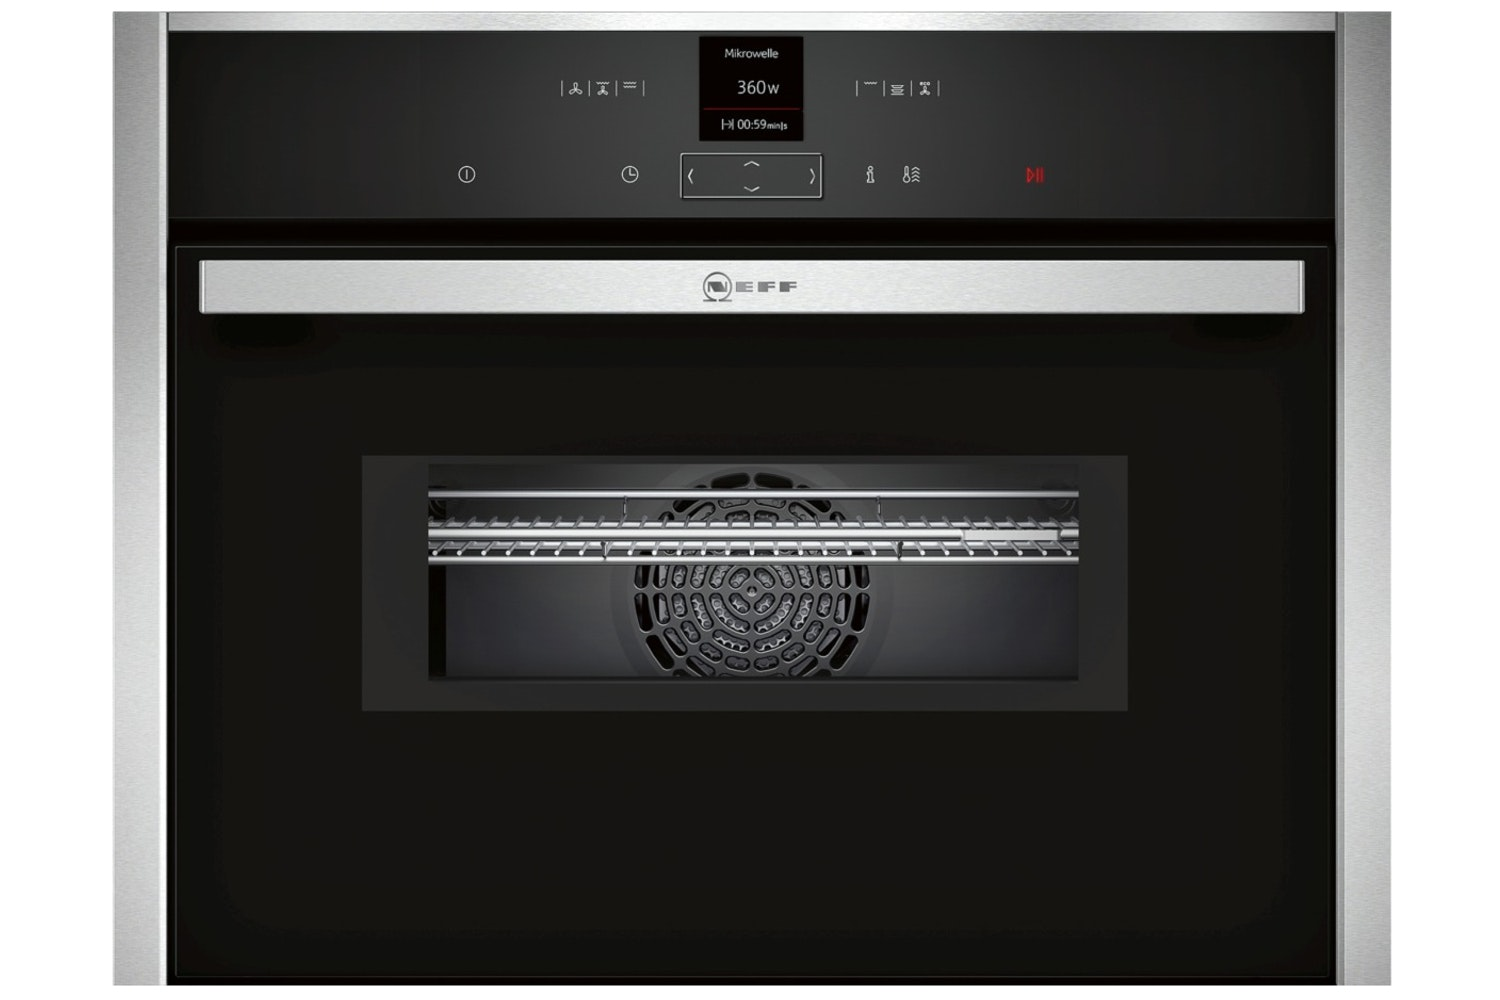 Neff Compact Combination Oven with Microwave | C17MR02N0B